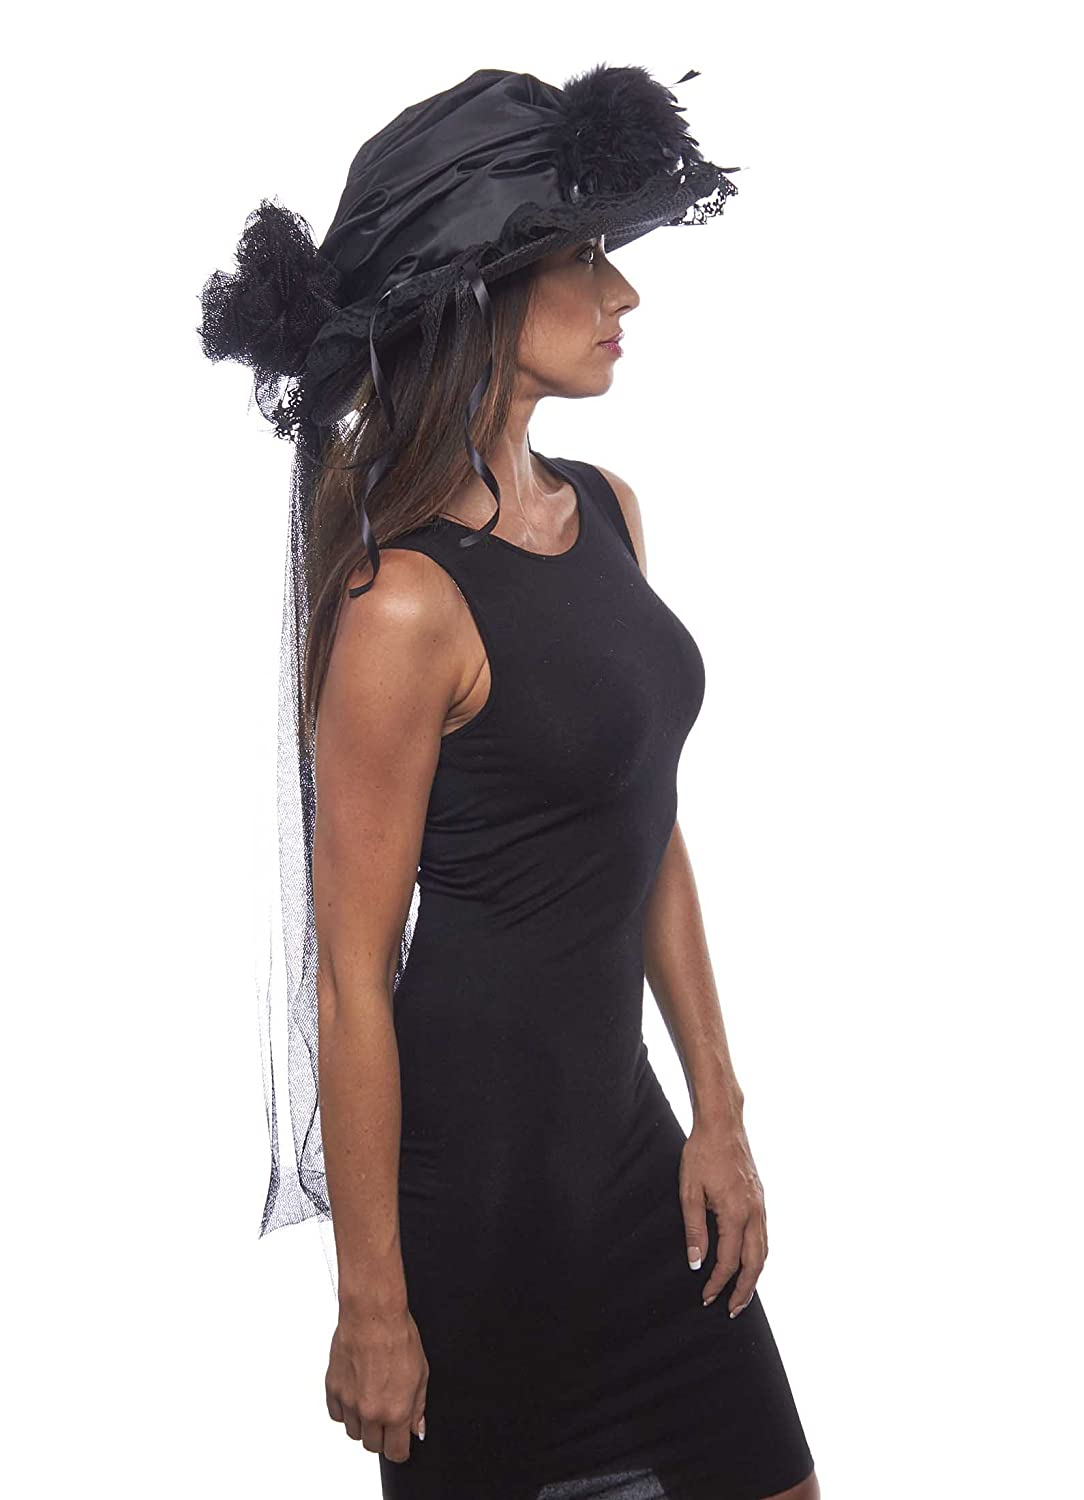 Edwardian Hats, Titanic Hats, Tea Party Hats Elegant Black Victorian Touring Hat $64.99 AT vintagedancer.com